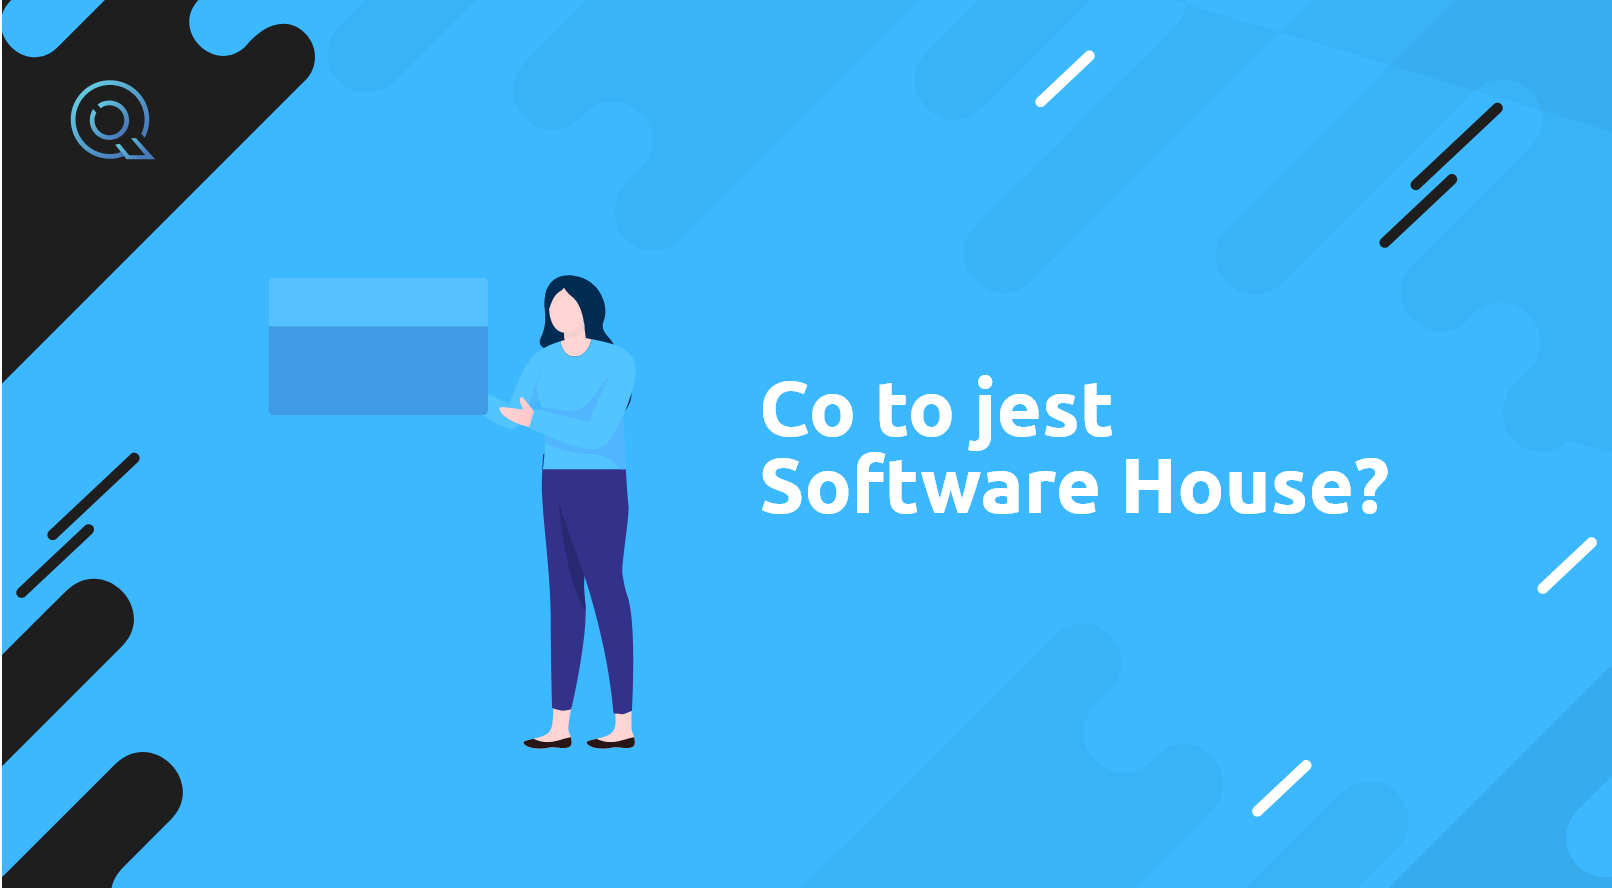 co to jest software house?